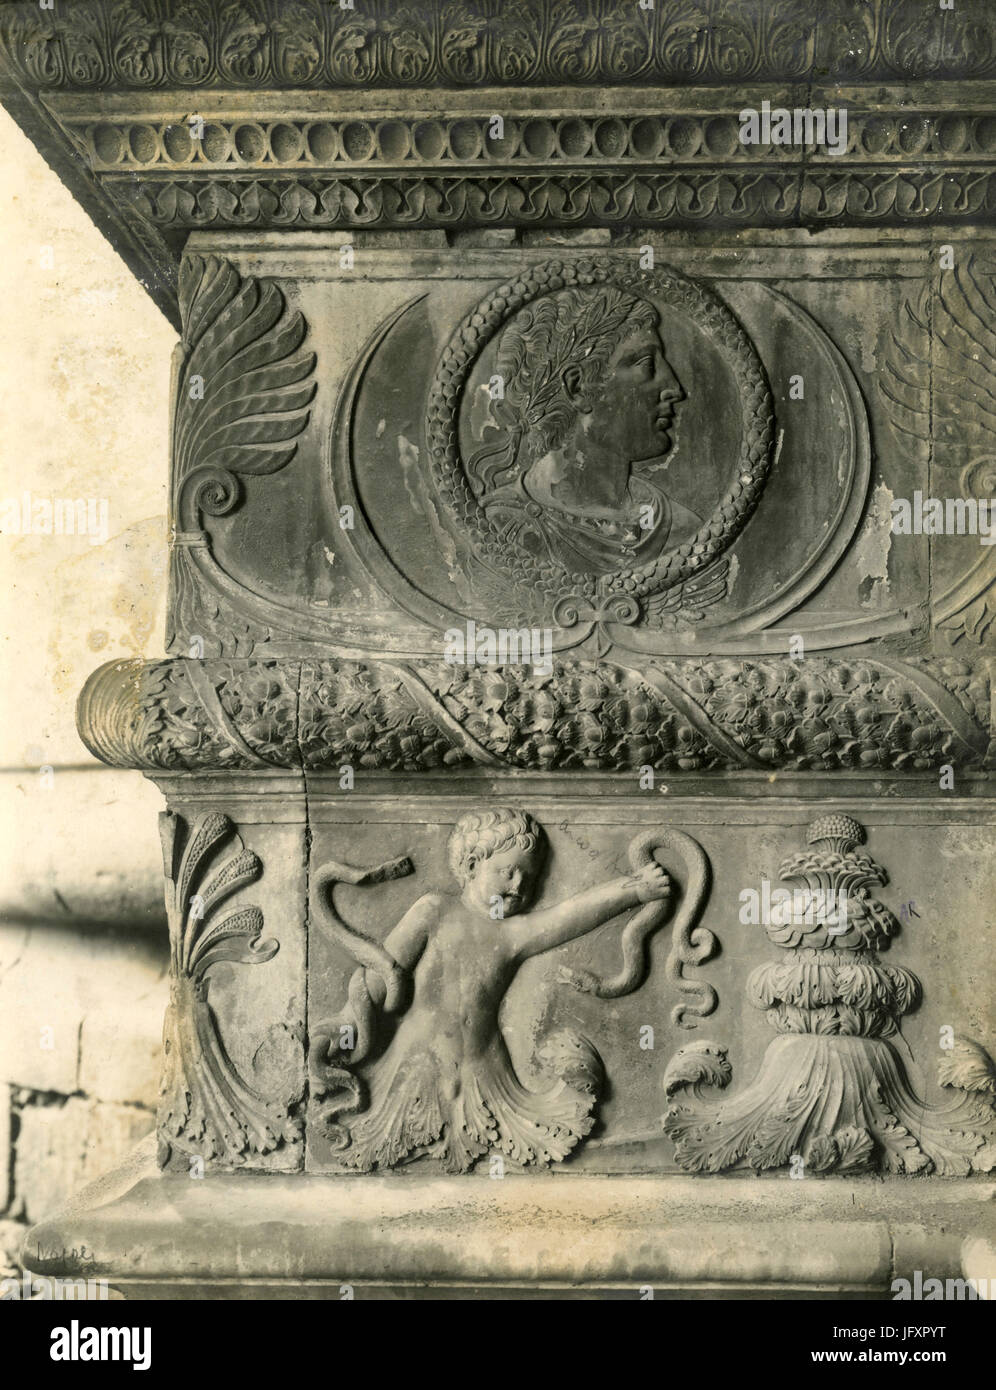 Aragon Arch, bas-relief detail, Castel Nuovo, Neaples, Italy - Stock Image